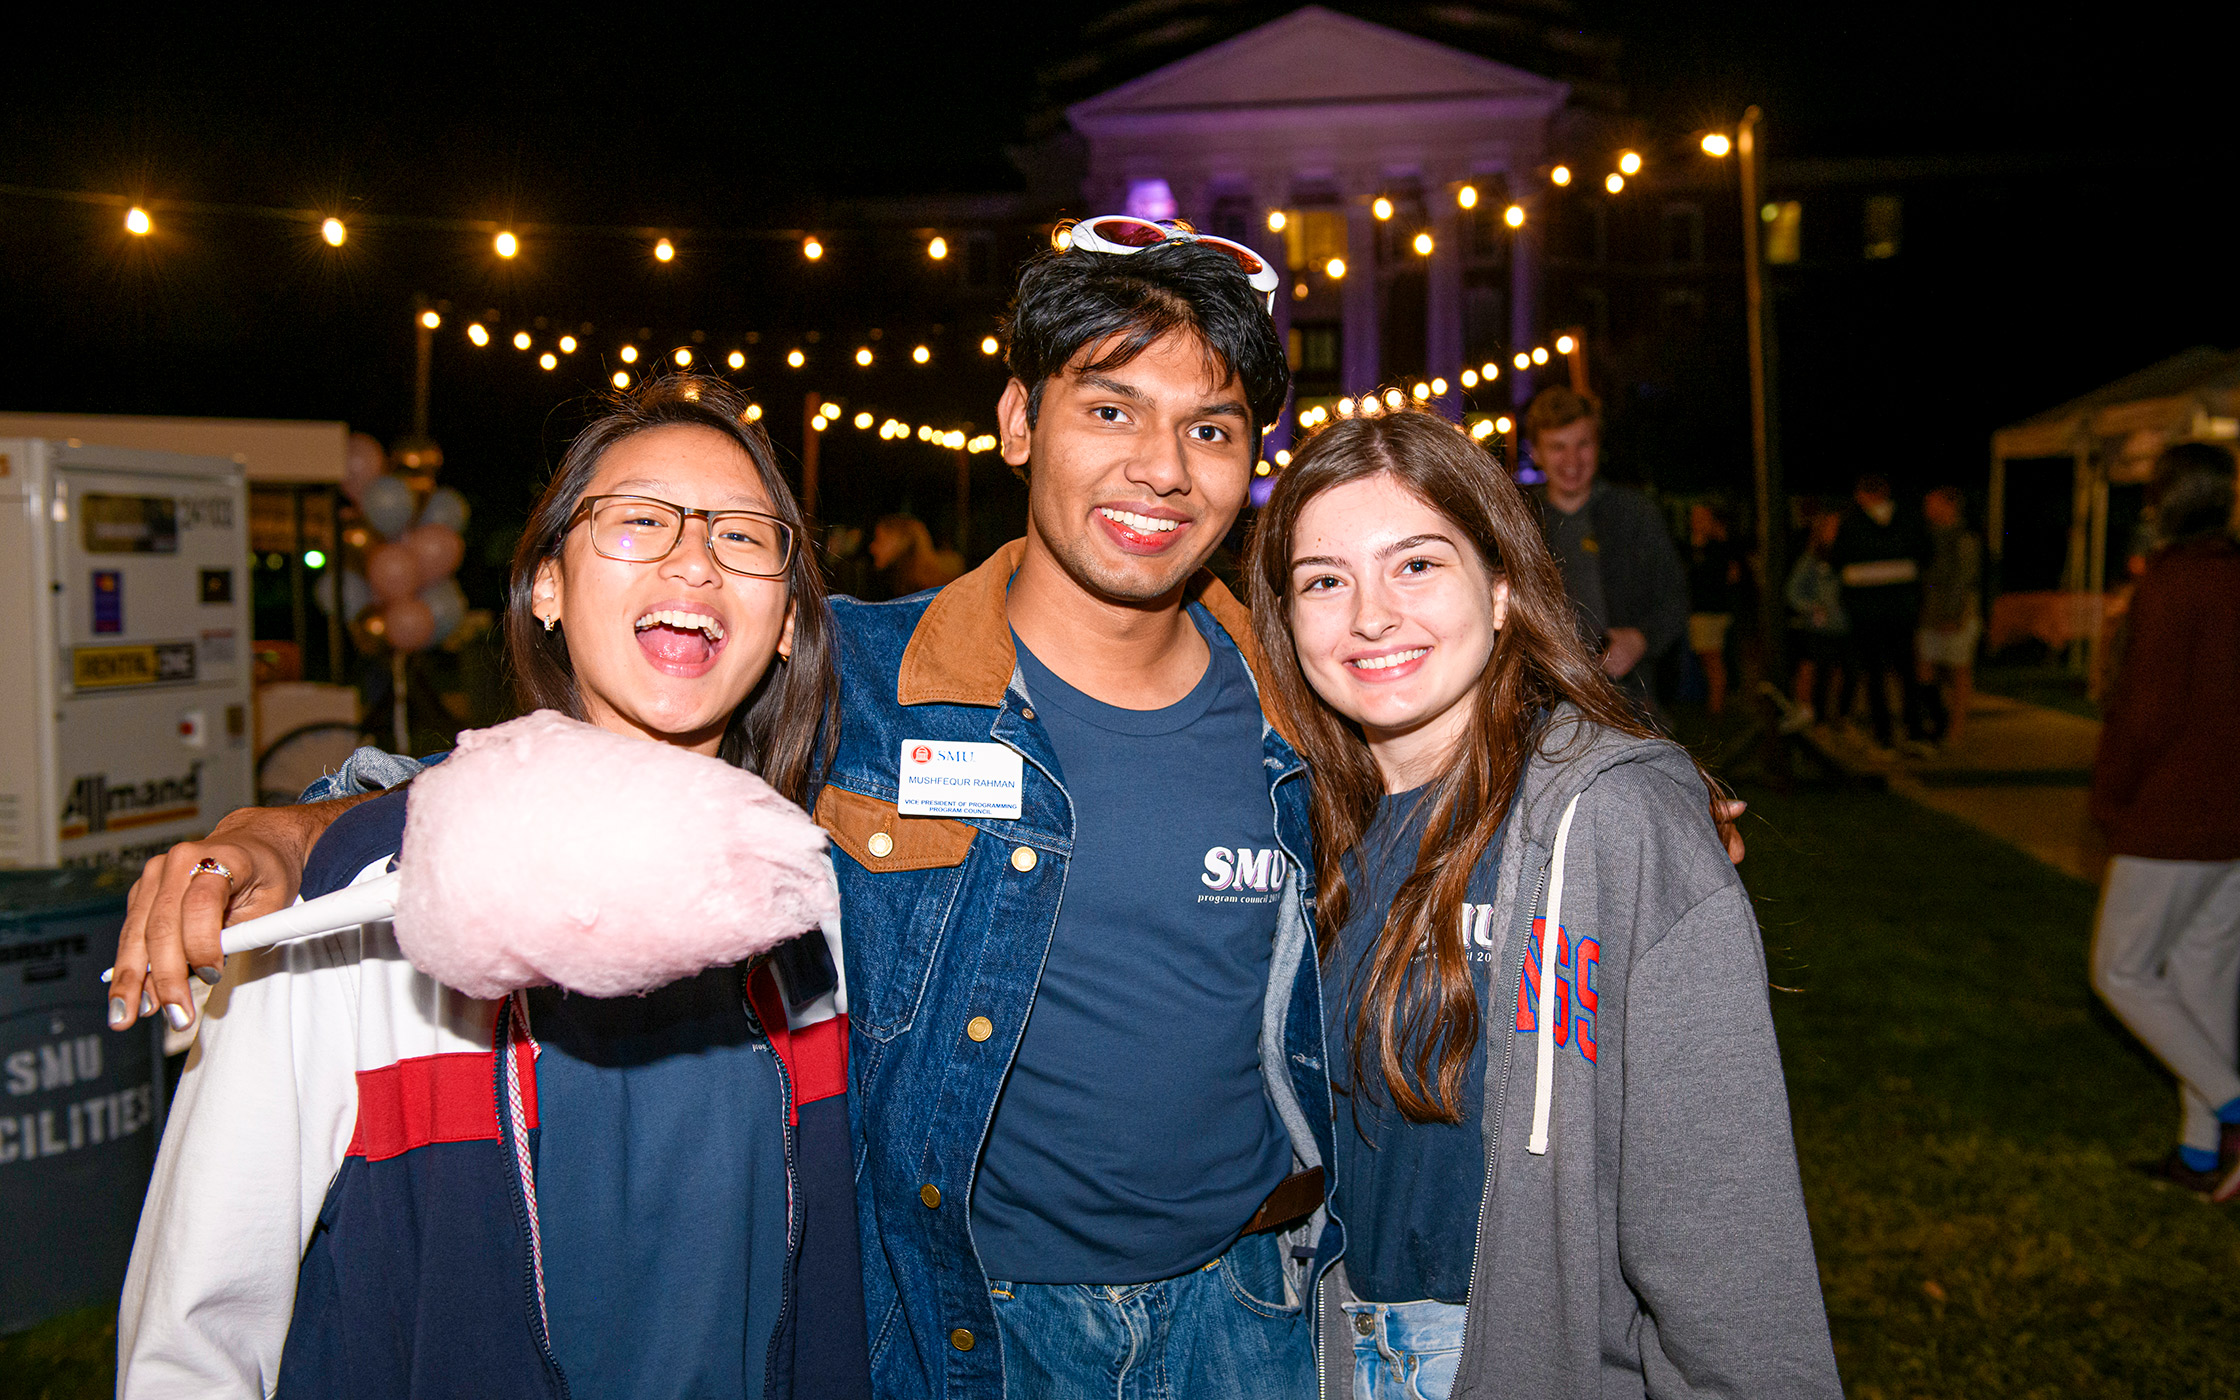 Three SMU students at Midnight Market event